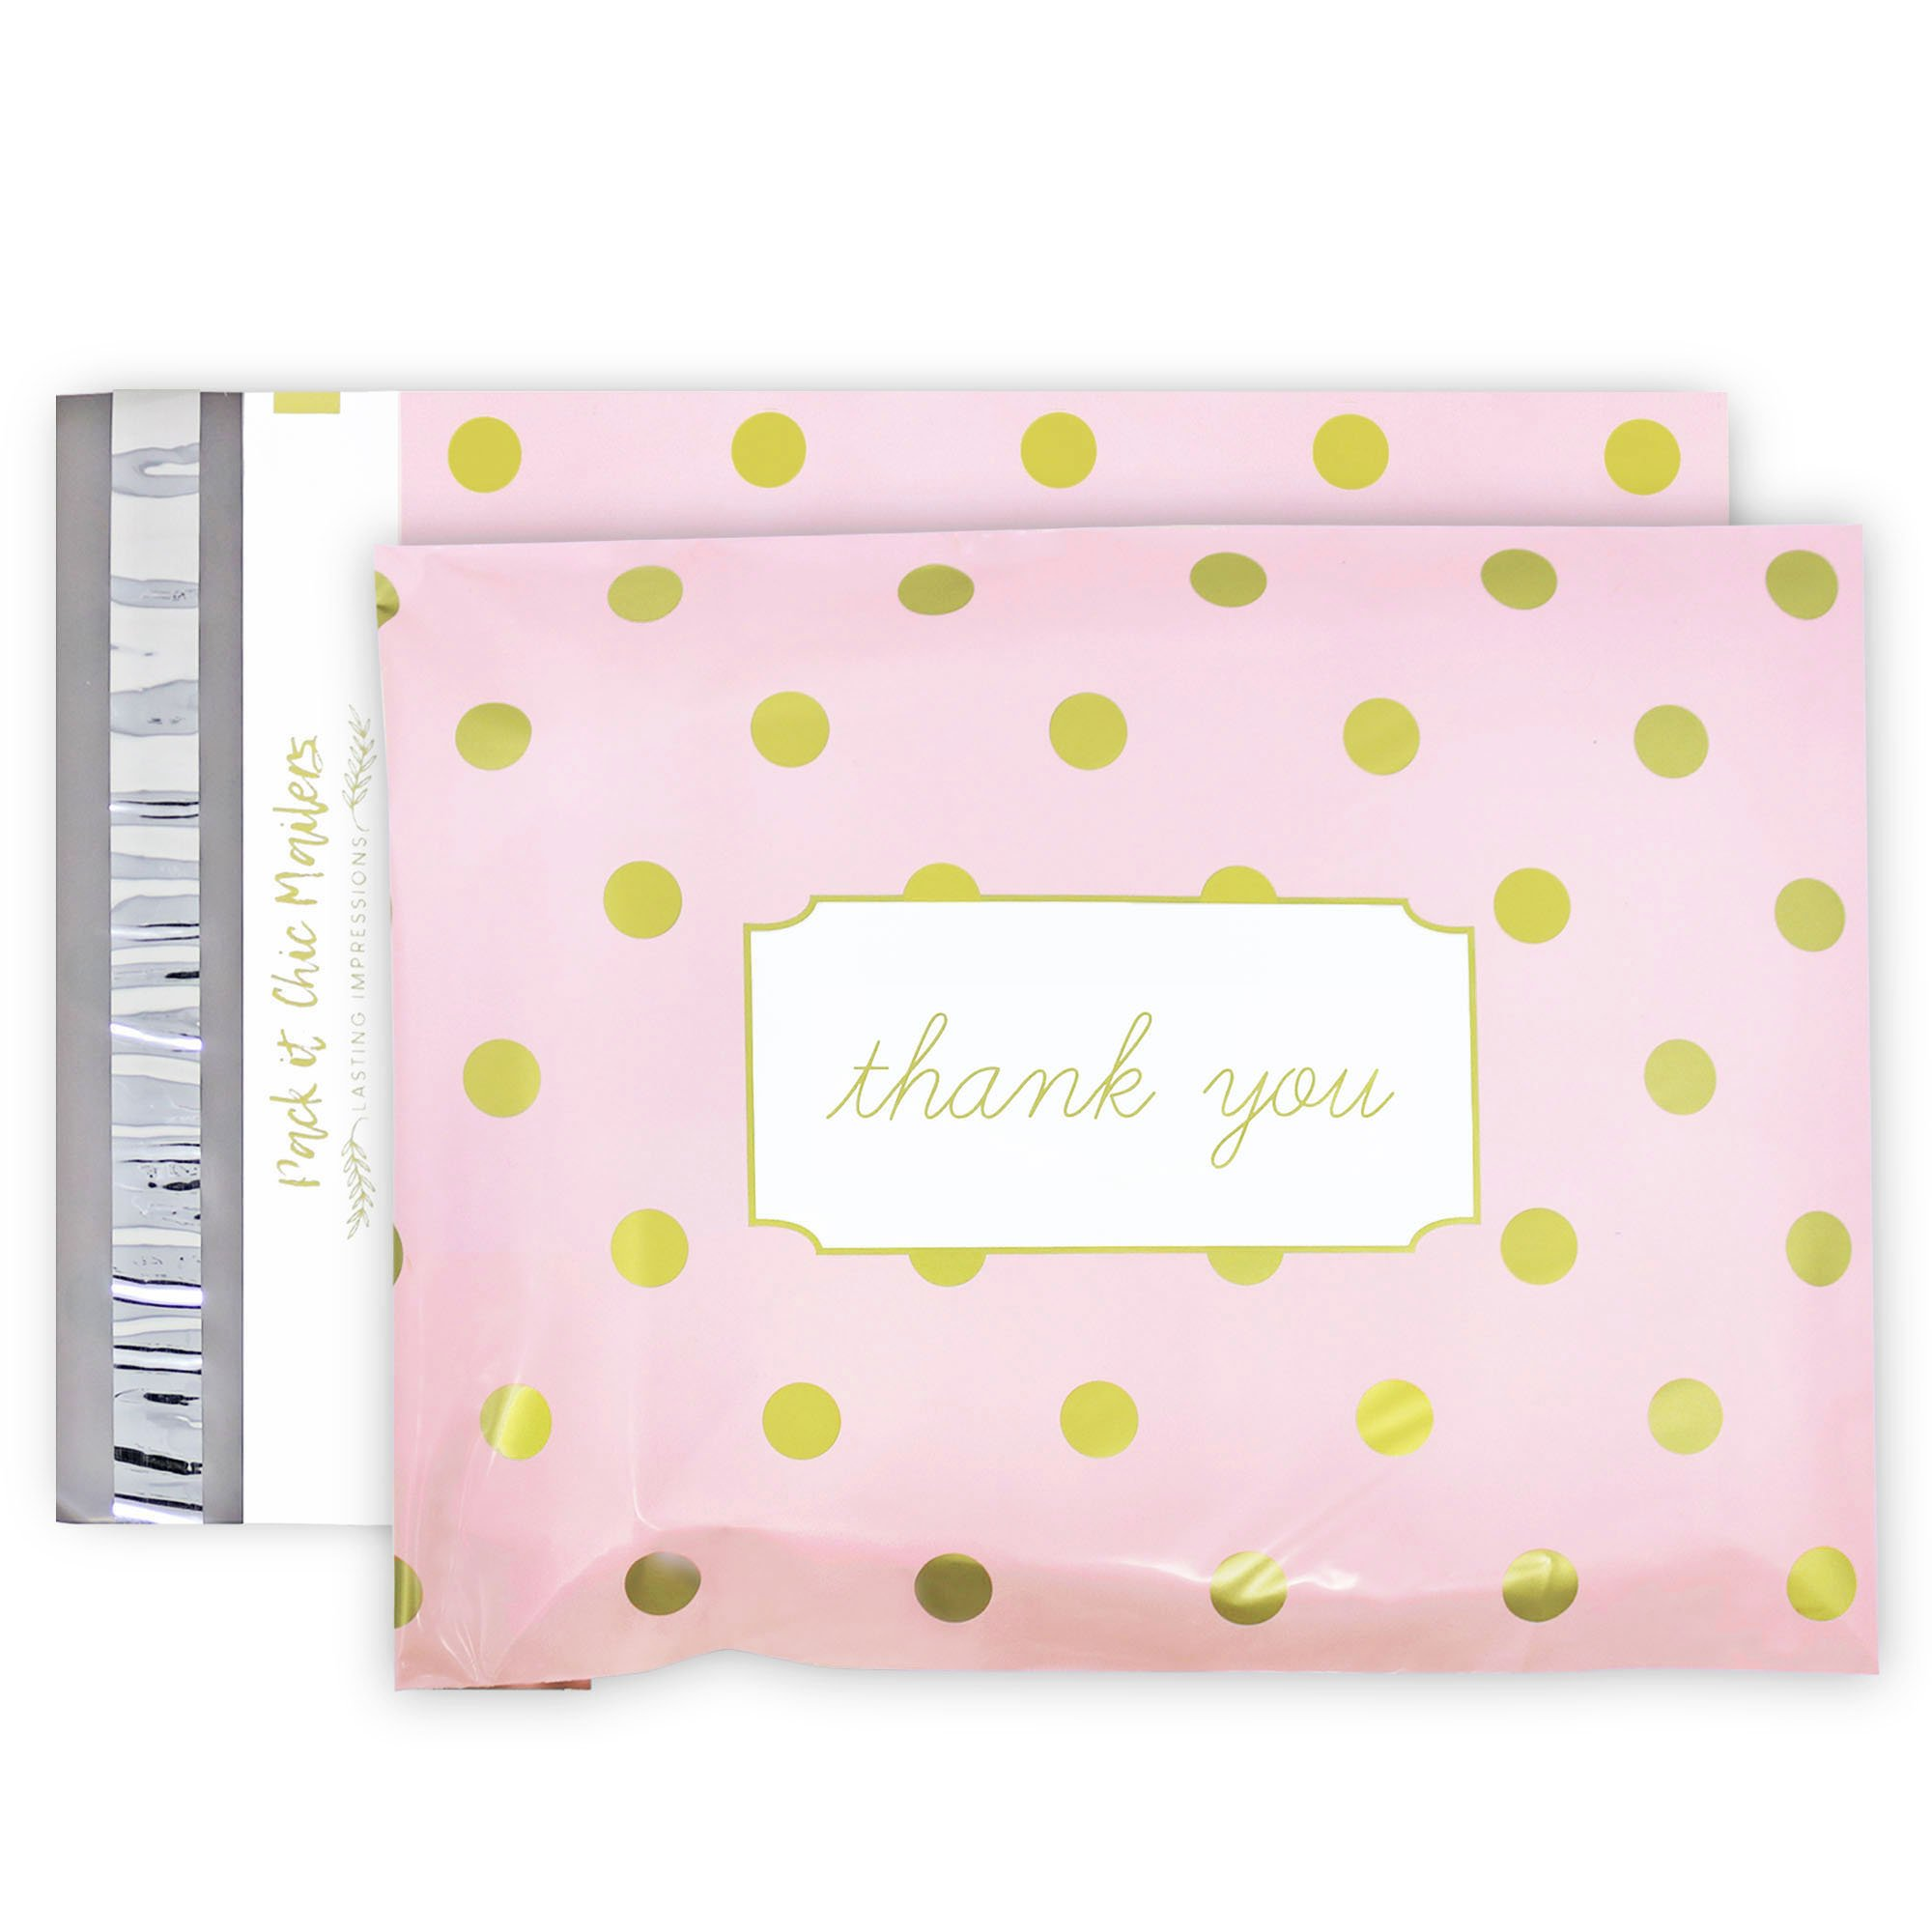 "Pack It Chic - 10"" X 13"" (100 Pack) Pink Polka Dot - Thank You Poly Mailer Envelope Plastic Custom Mailing & Shipping Bags - Self Seal (More Designs Available)"